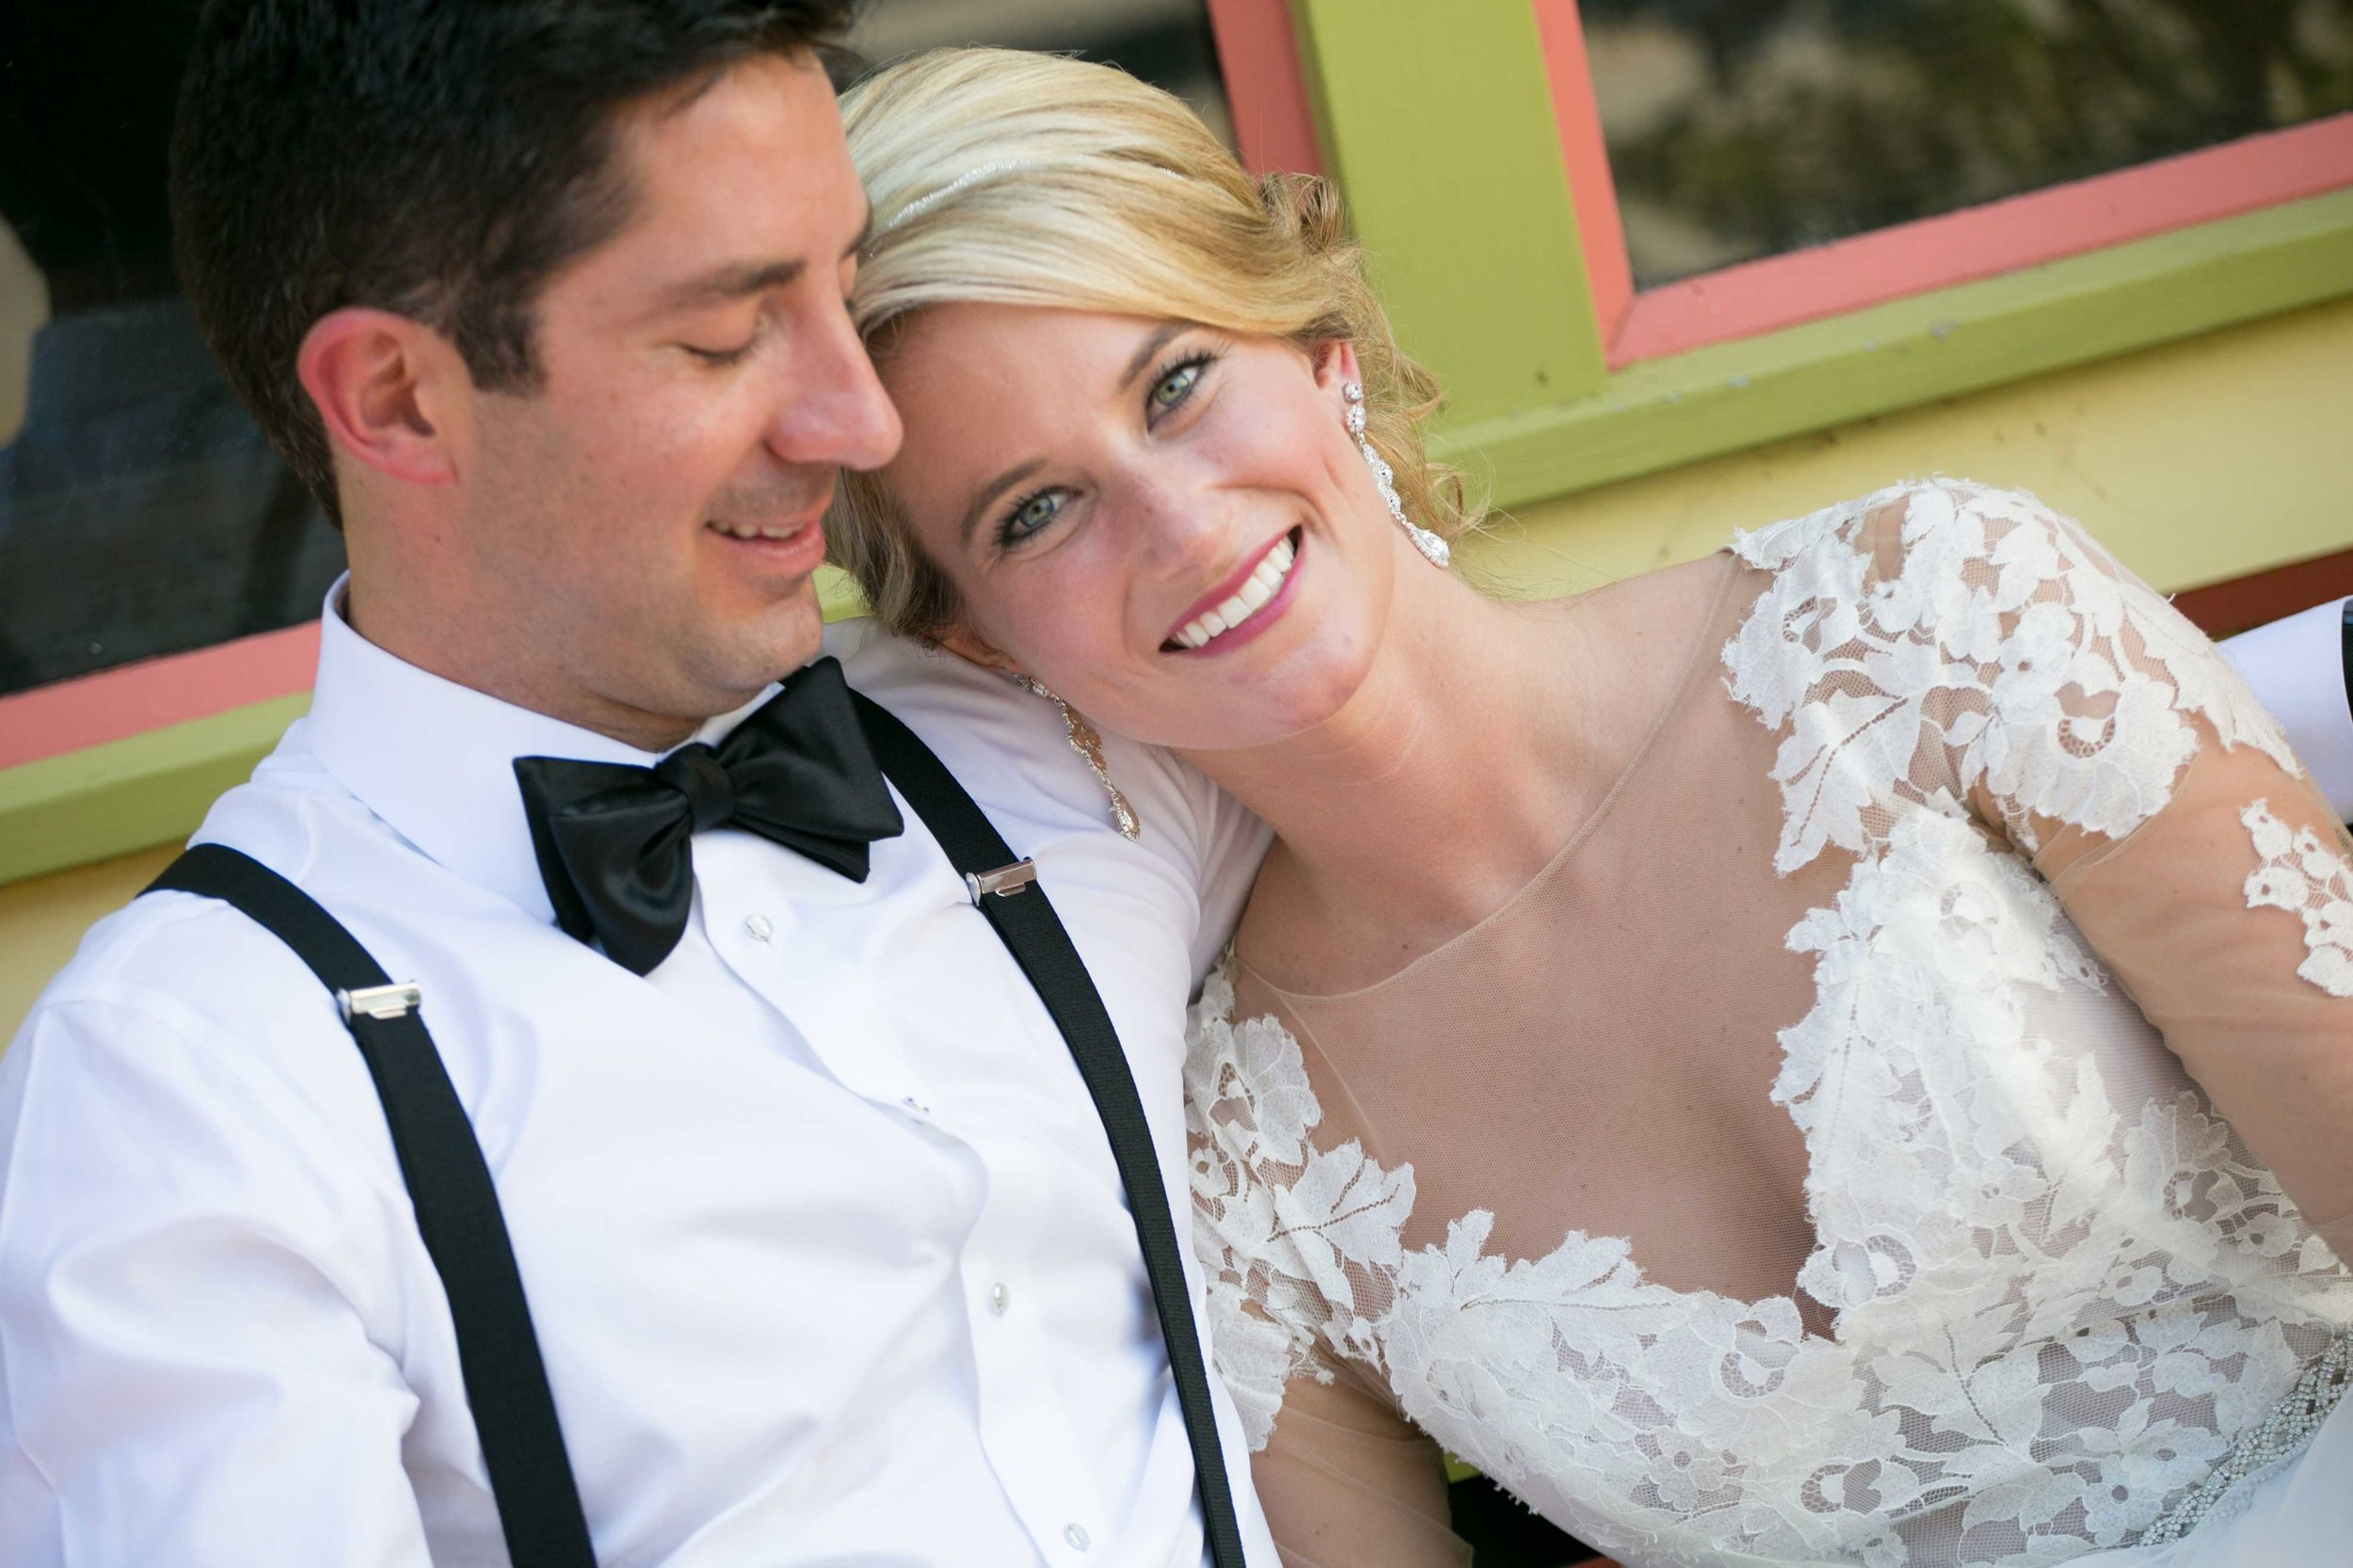 House-of-White-Bridal-Boutique-Hayley-Paige-Wedding-Gown